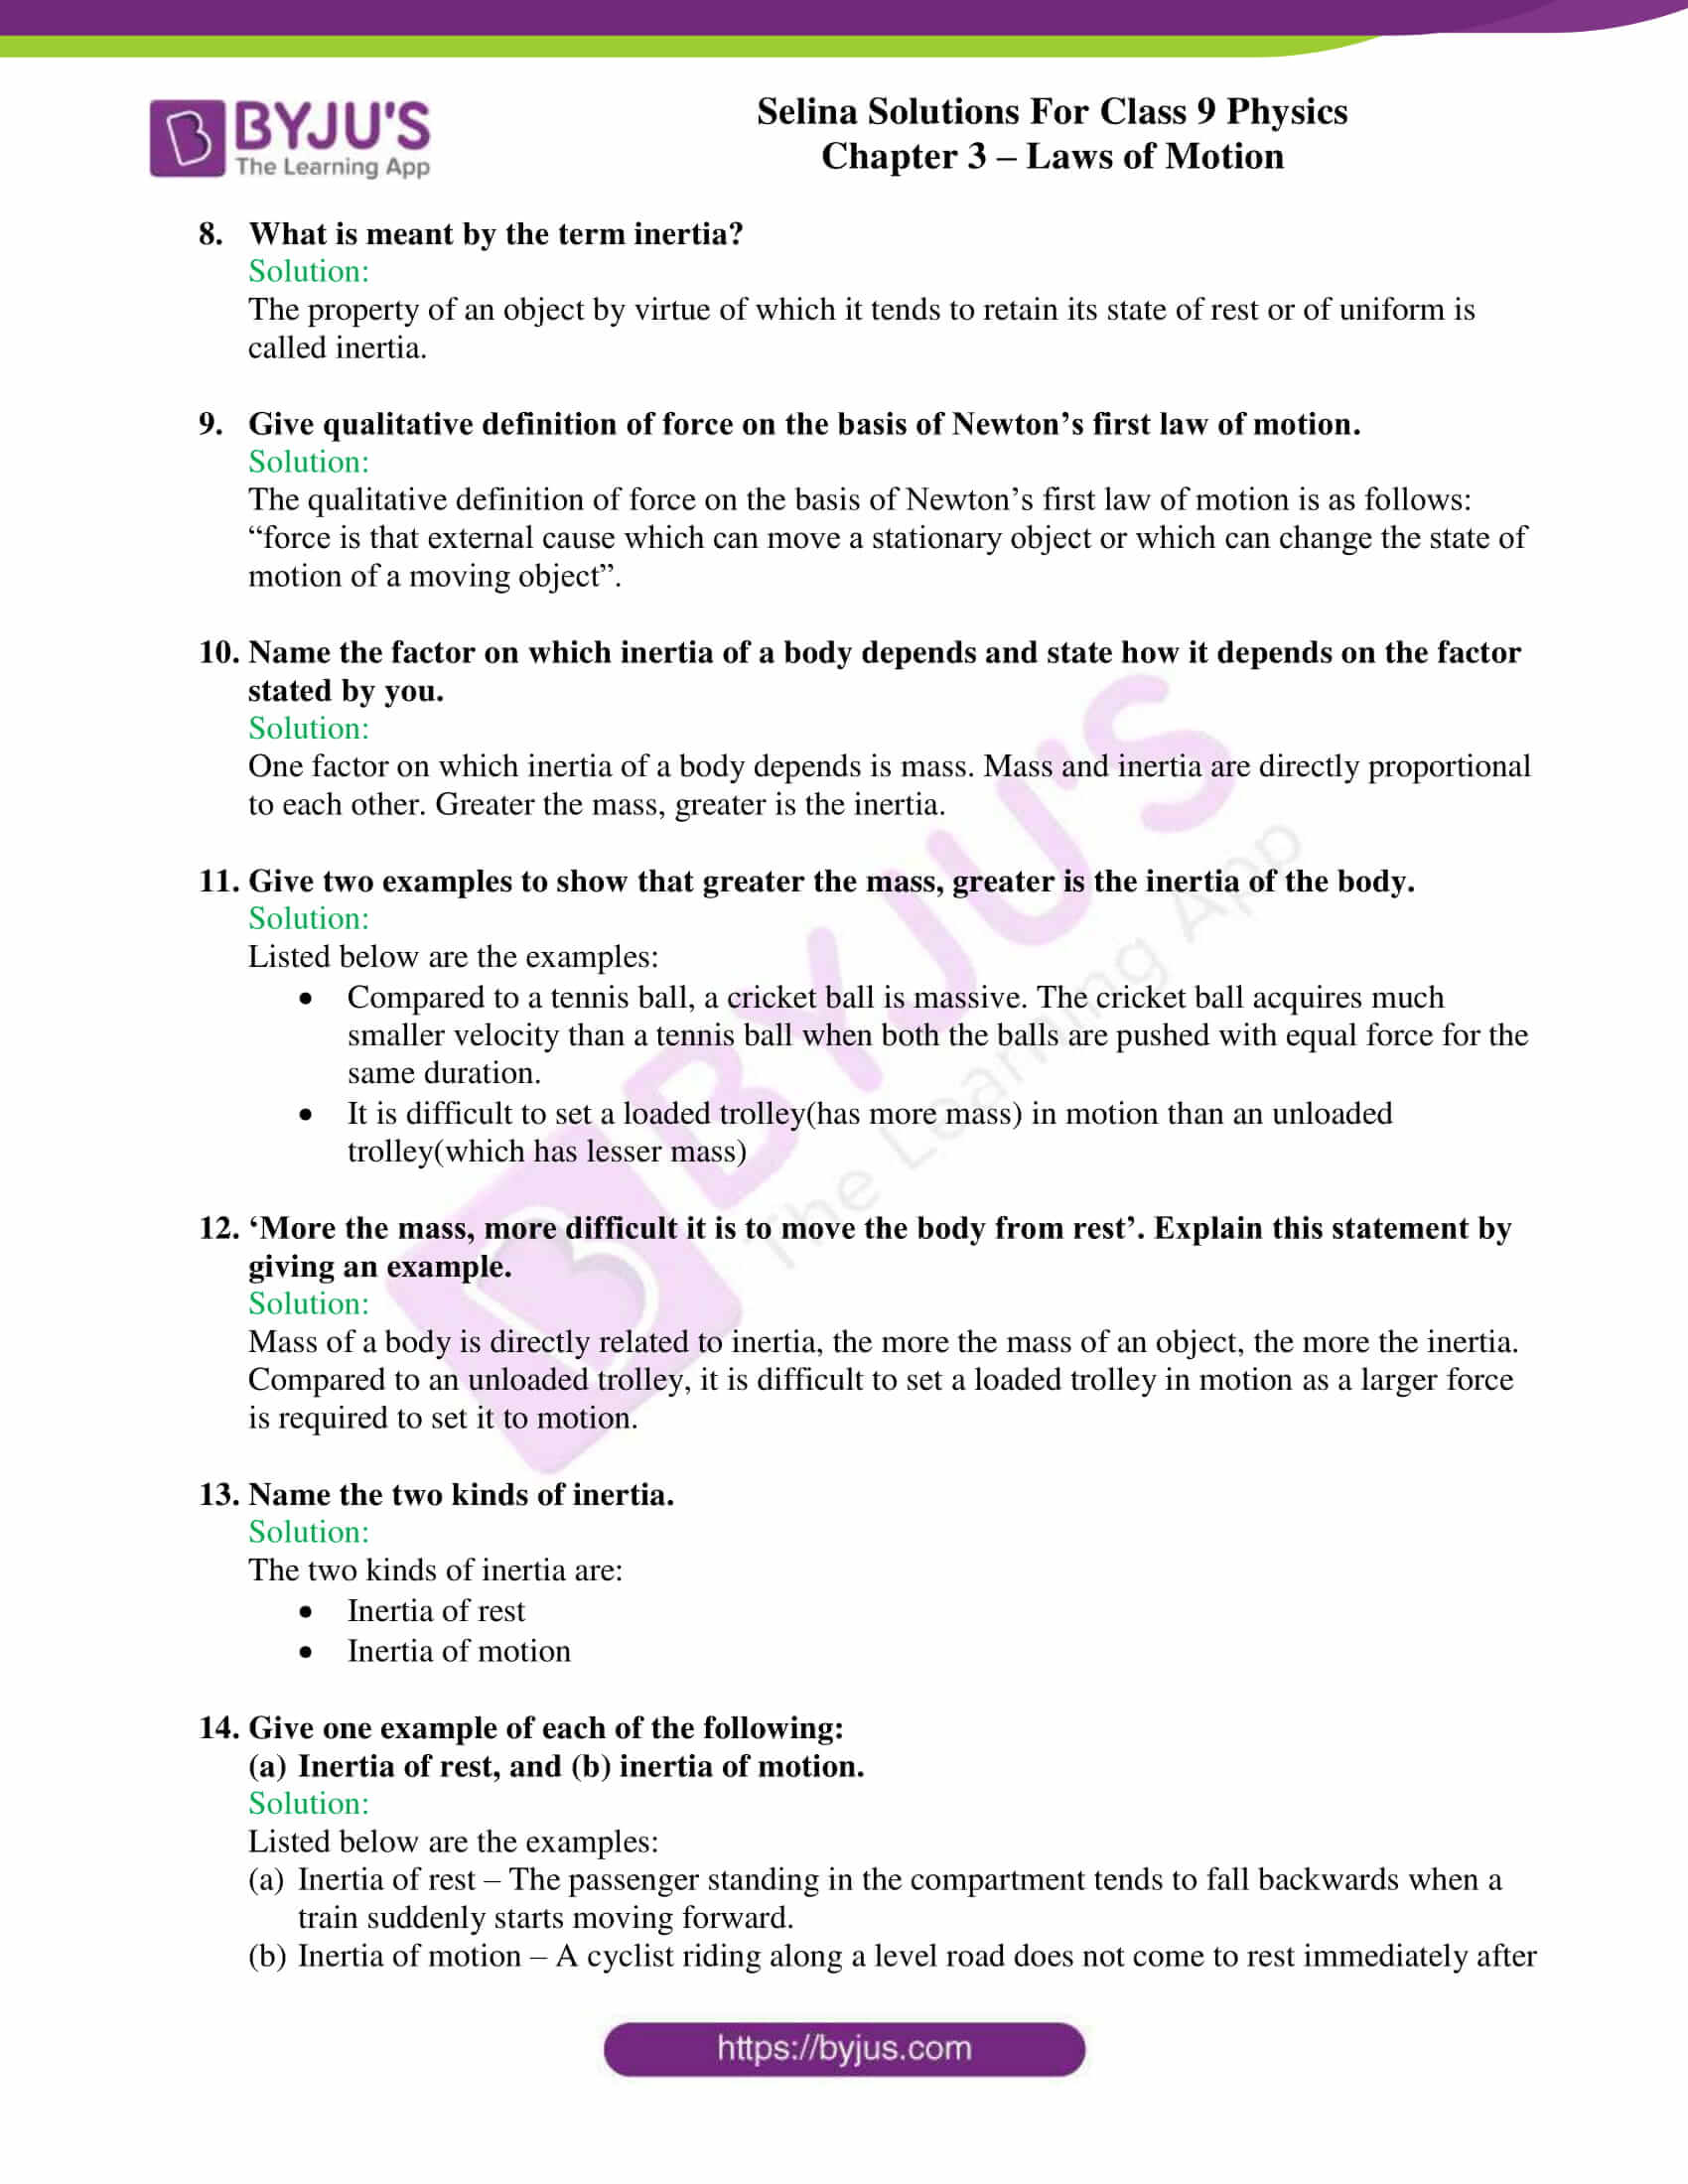 selina solutions class 9 physics chapter 3 Laws of Motion part 06